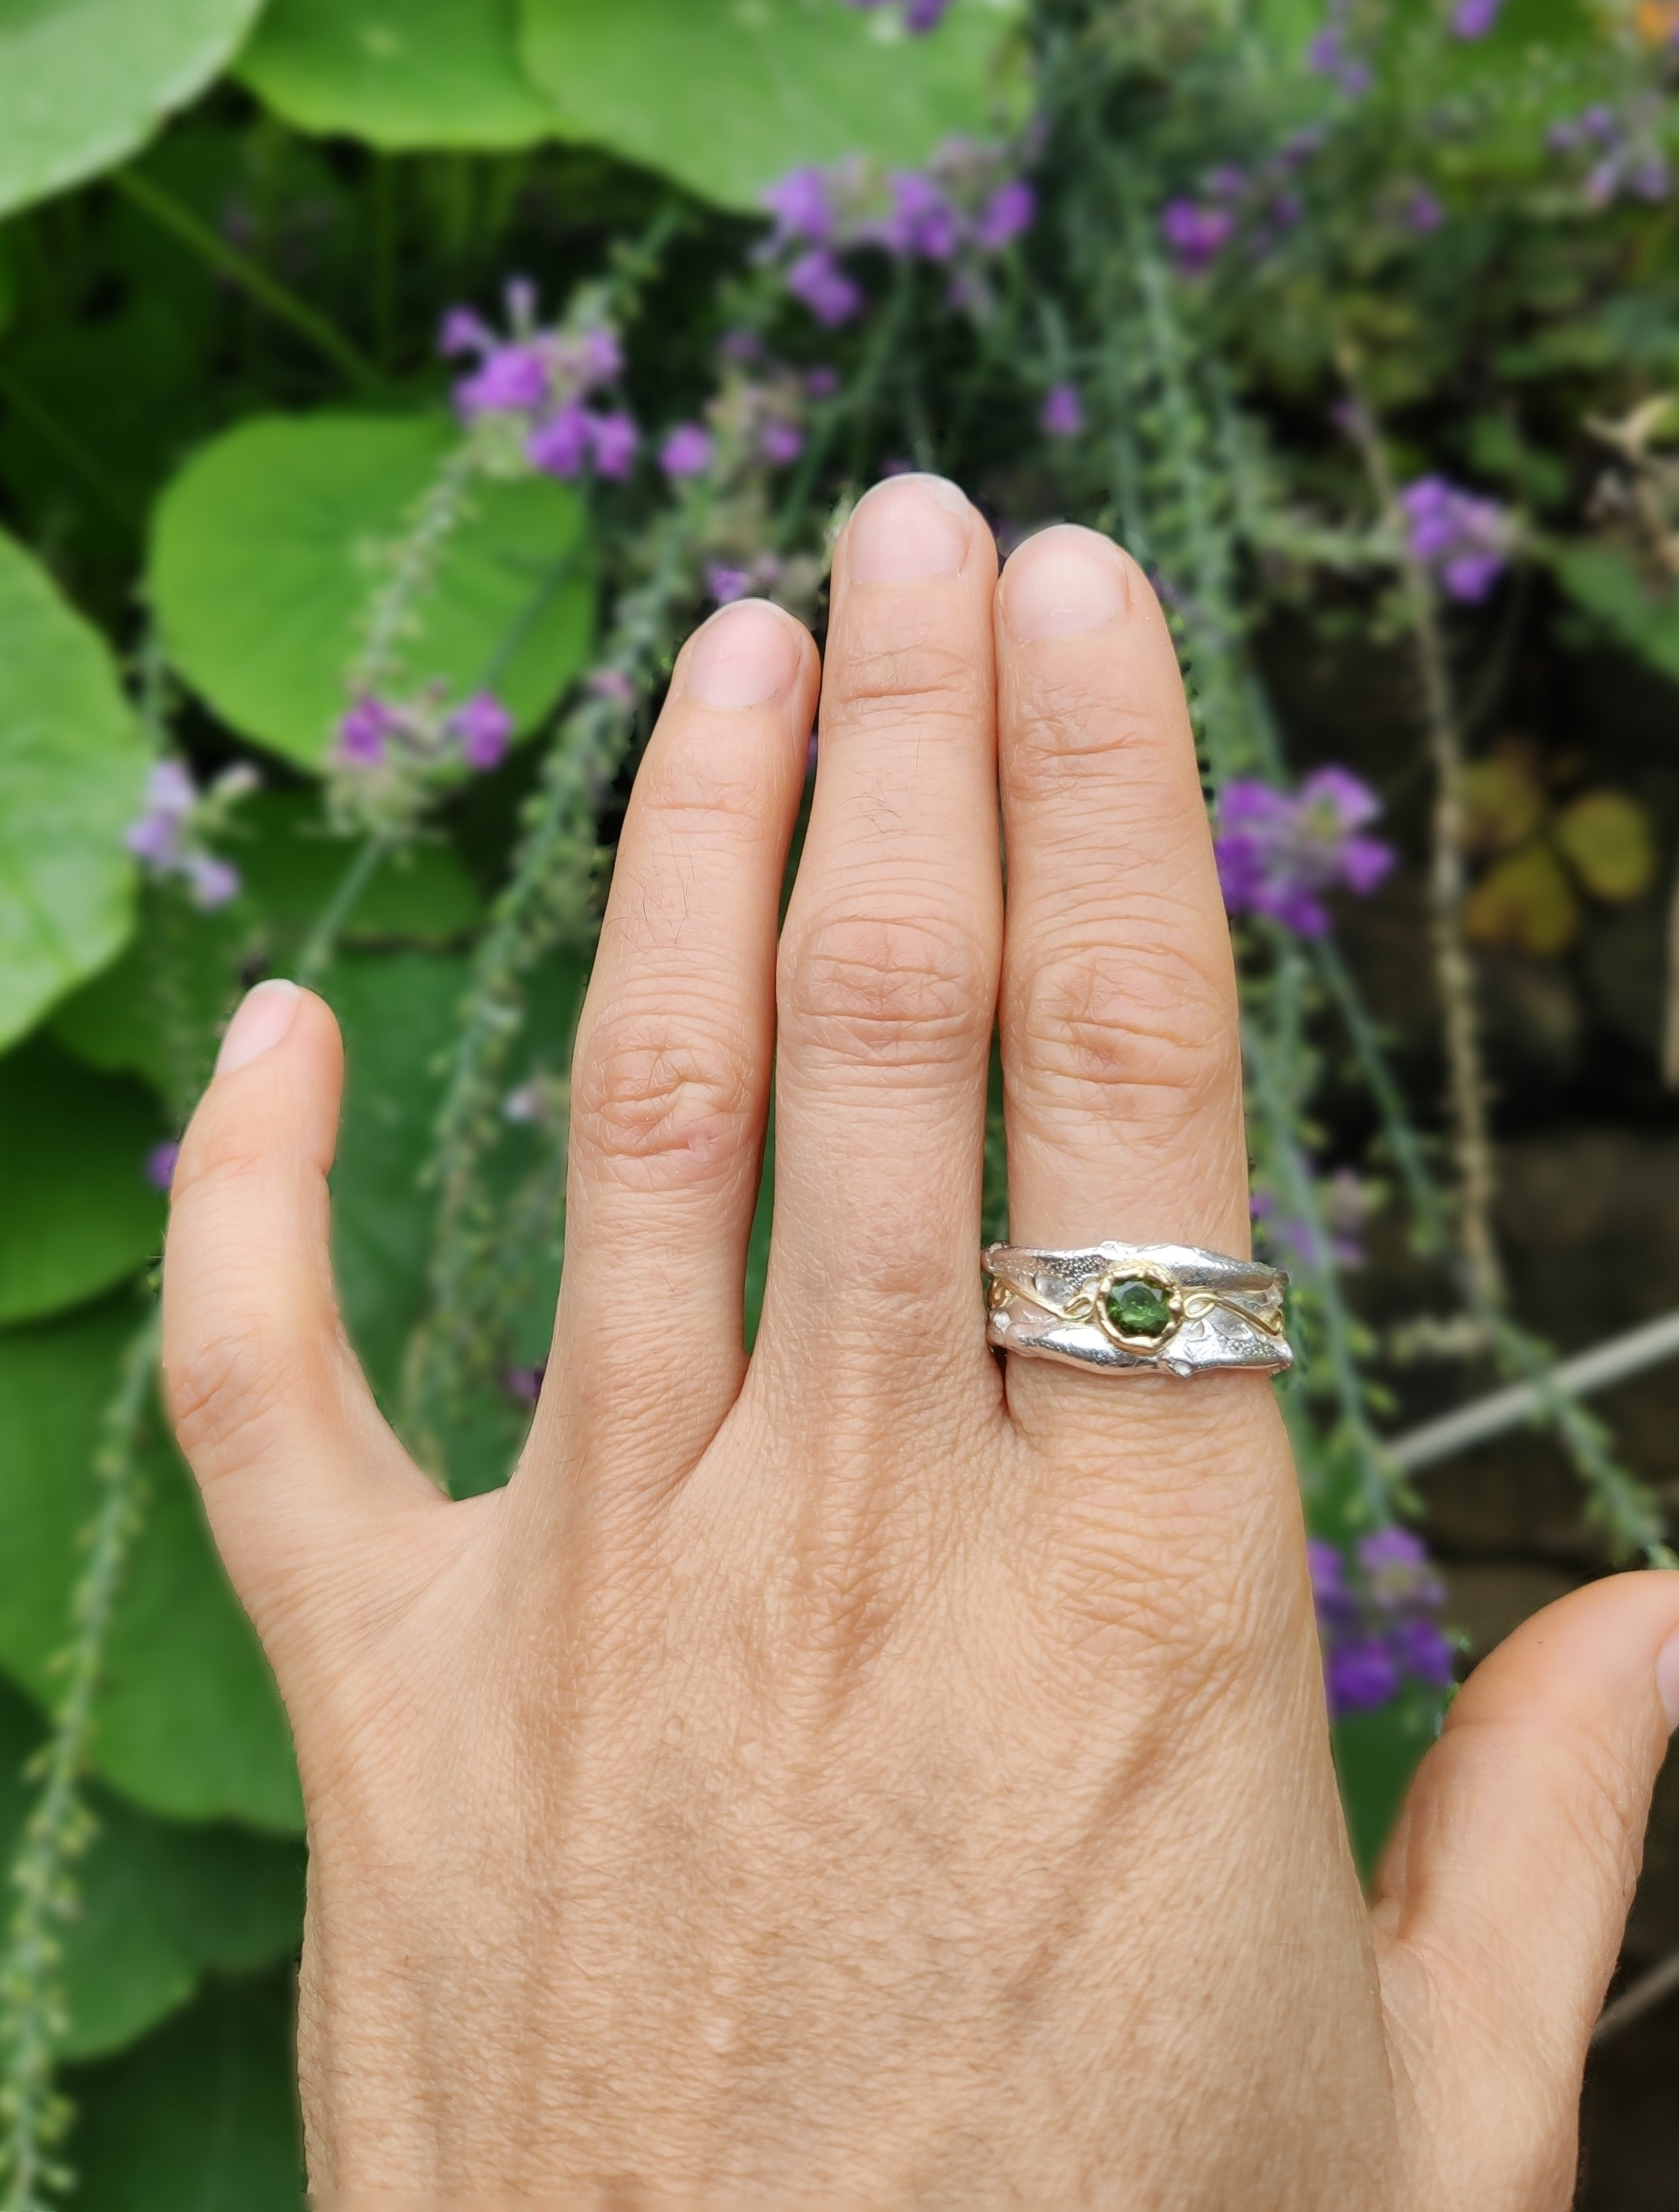 Natural Green Tourmaline Crystal Silver Ring Textured Thick Silver Band Ring with Raw Gemstone